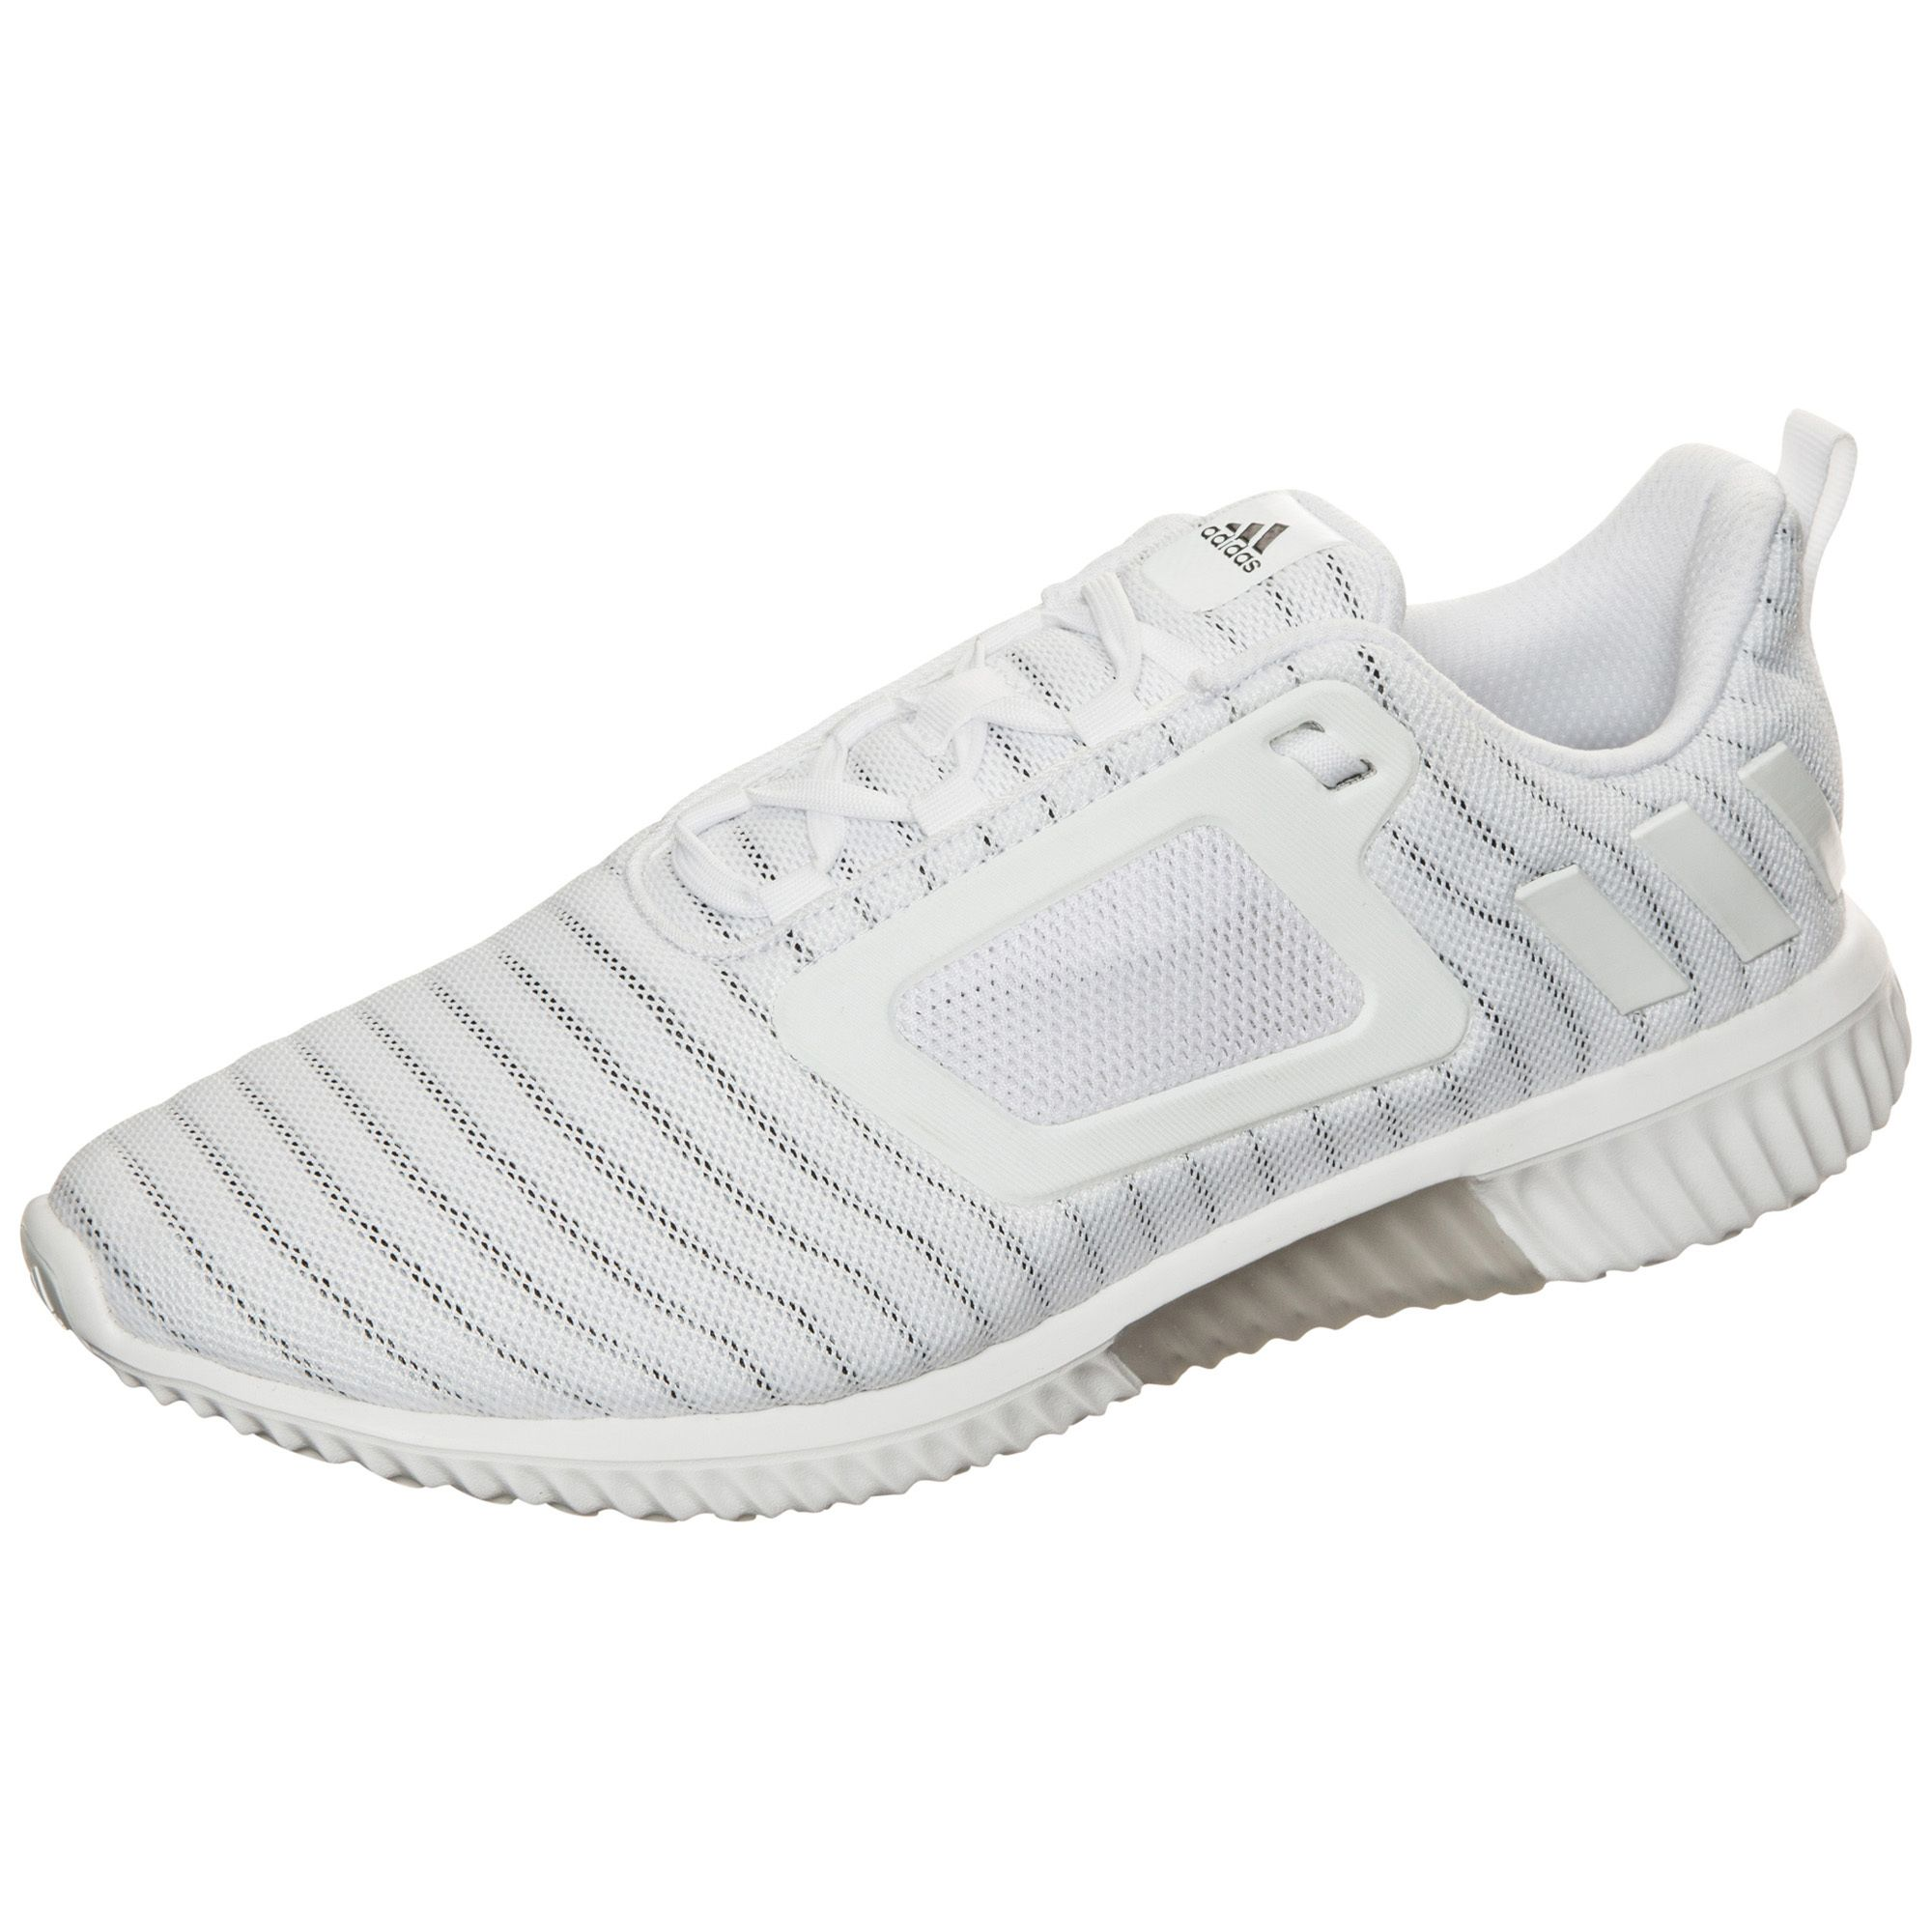 ADIDAS PERFORMANCE adidas Performance Laufschuh »Climacool«